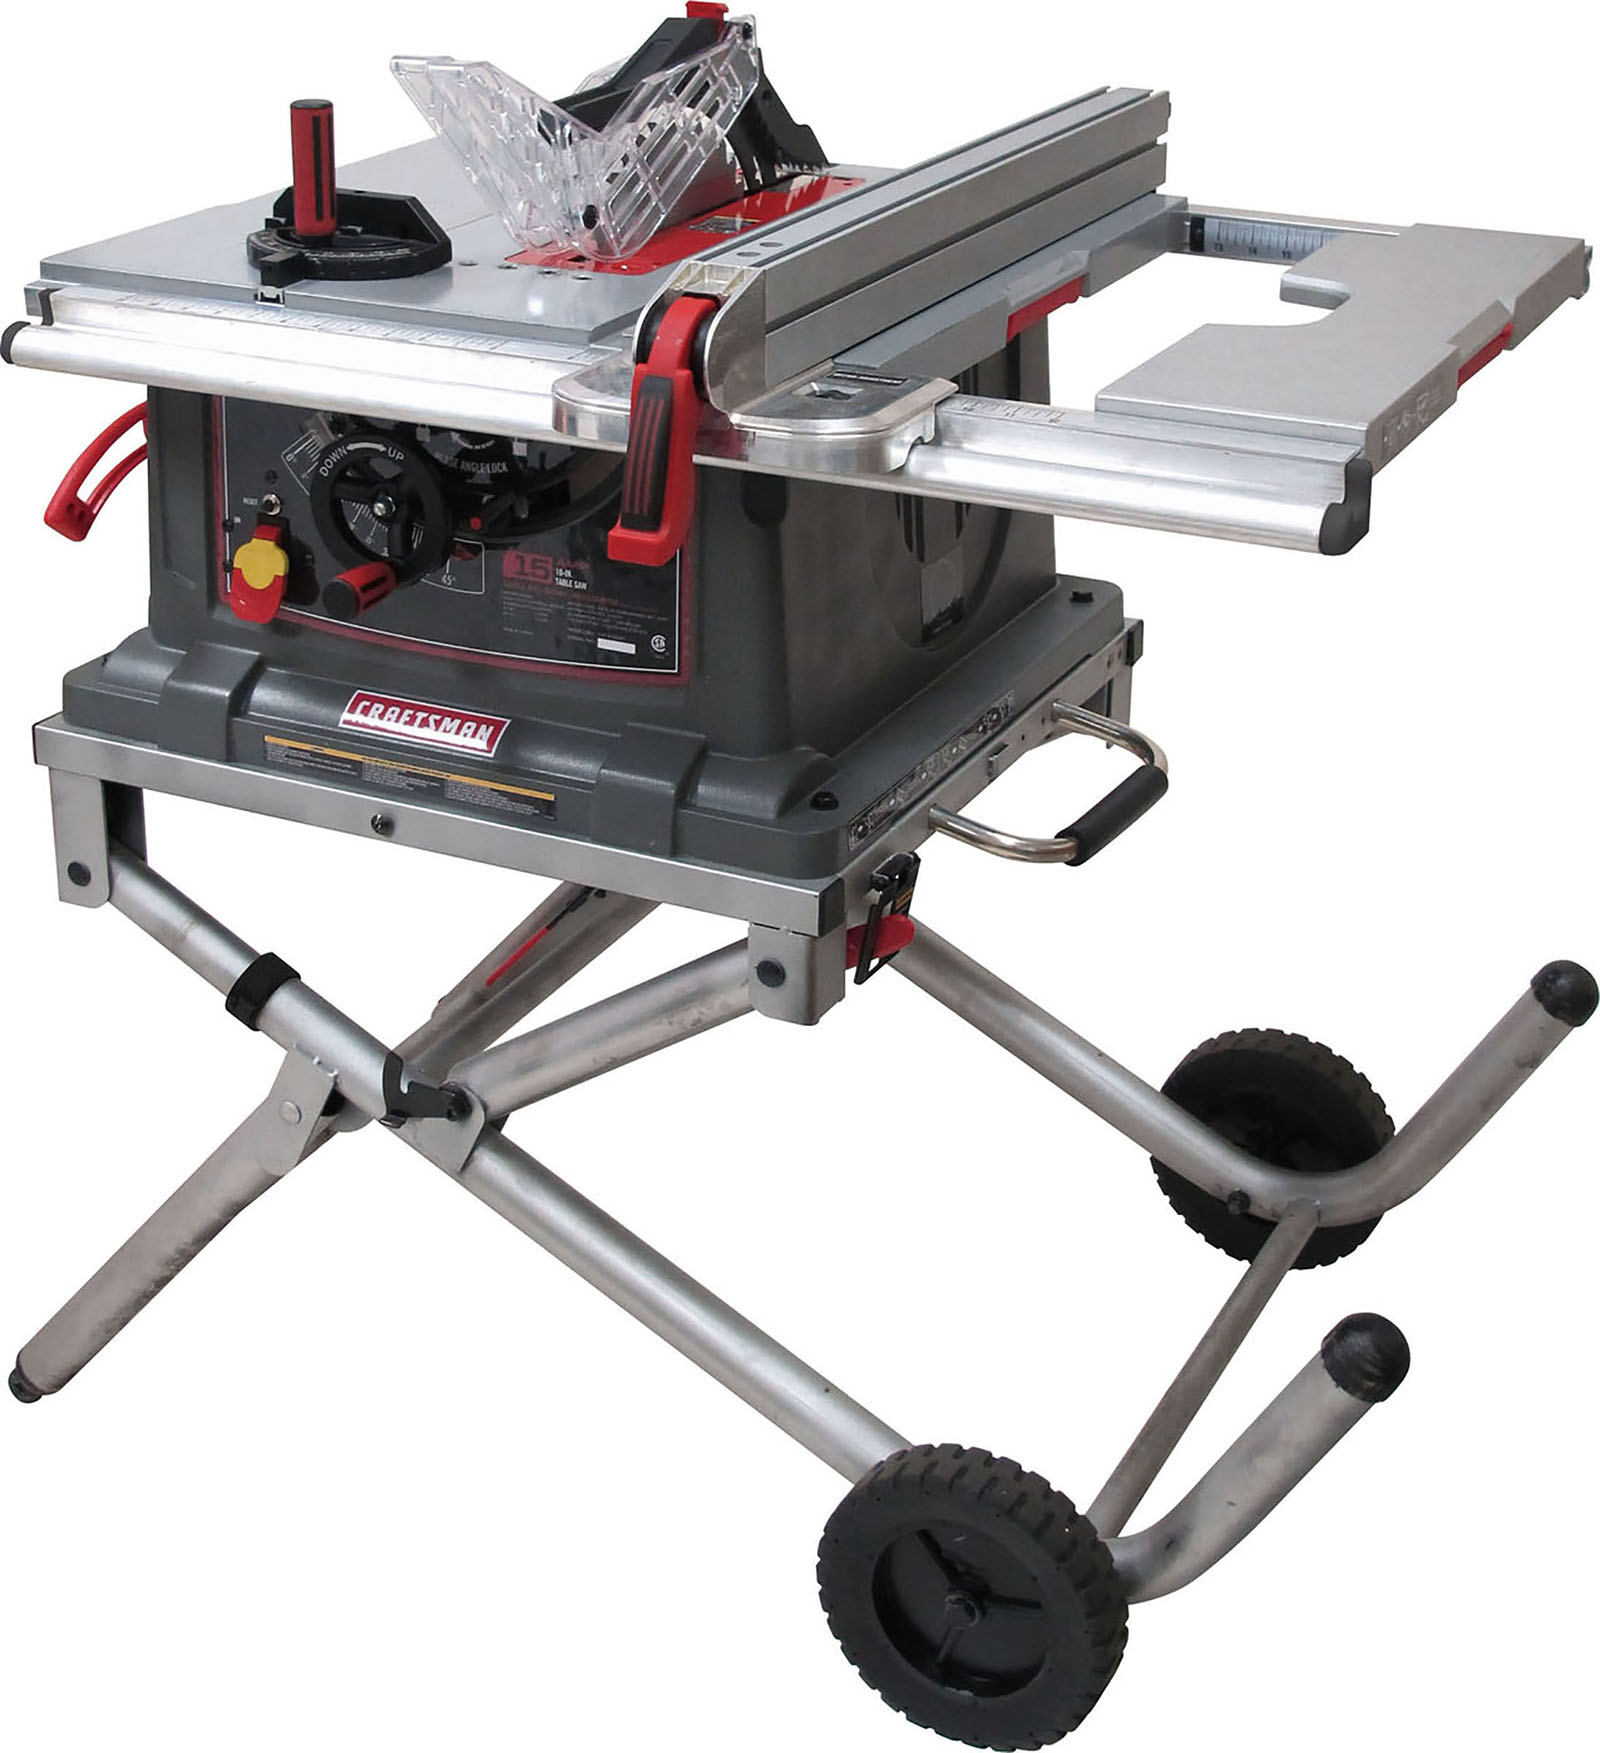 21833 Table Saw